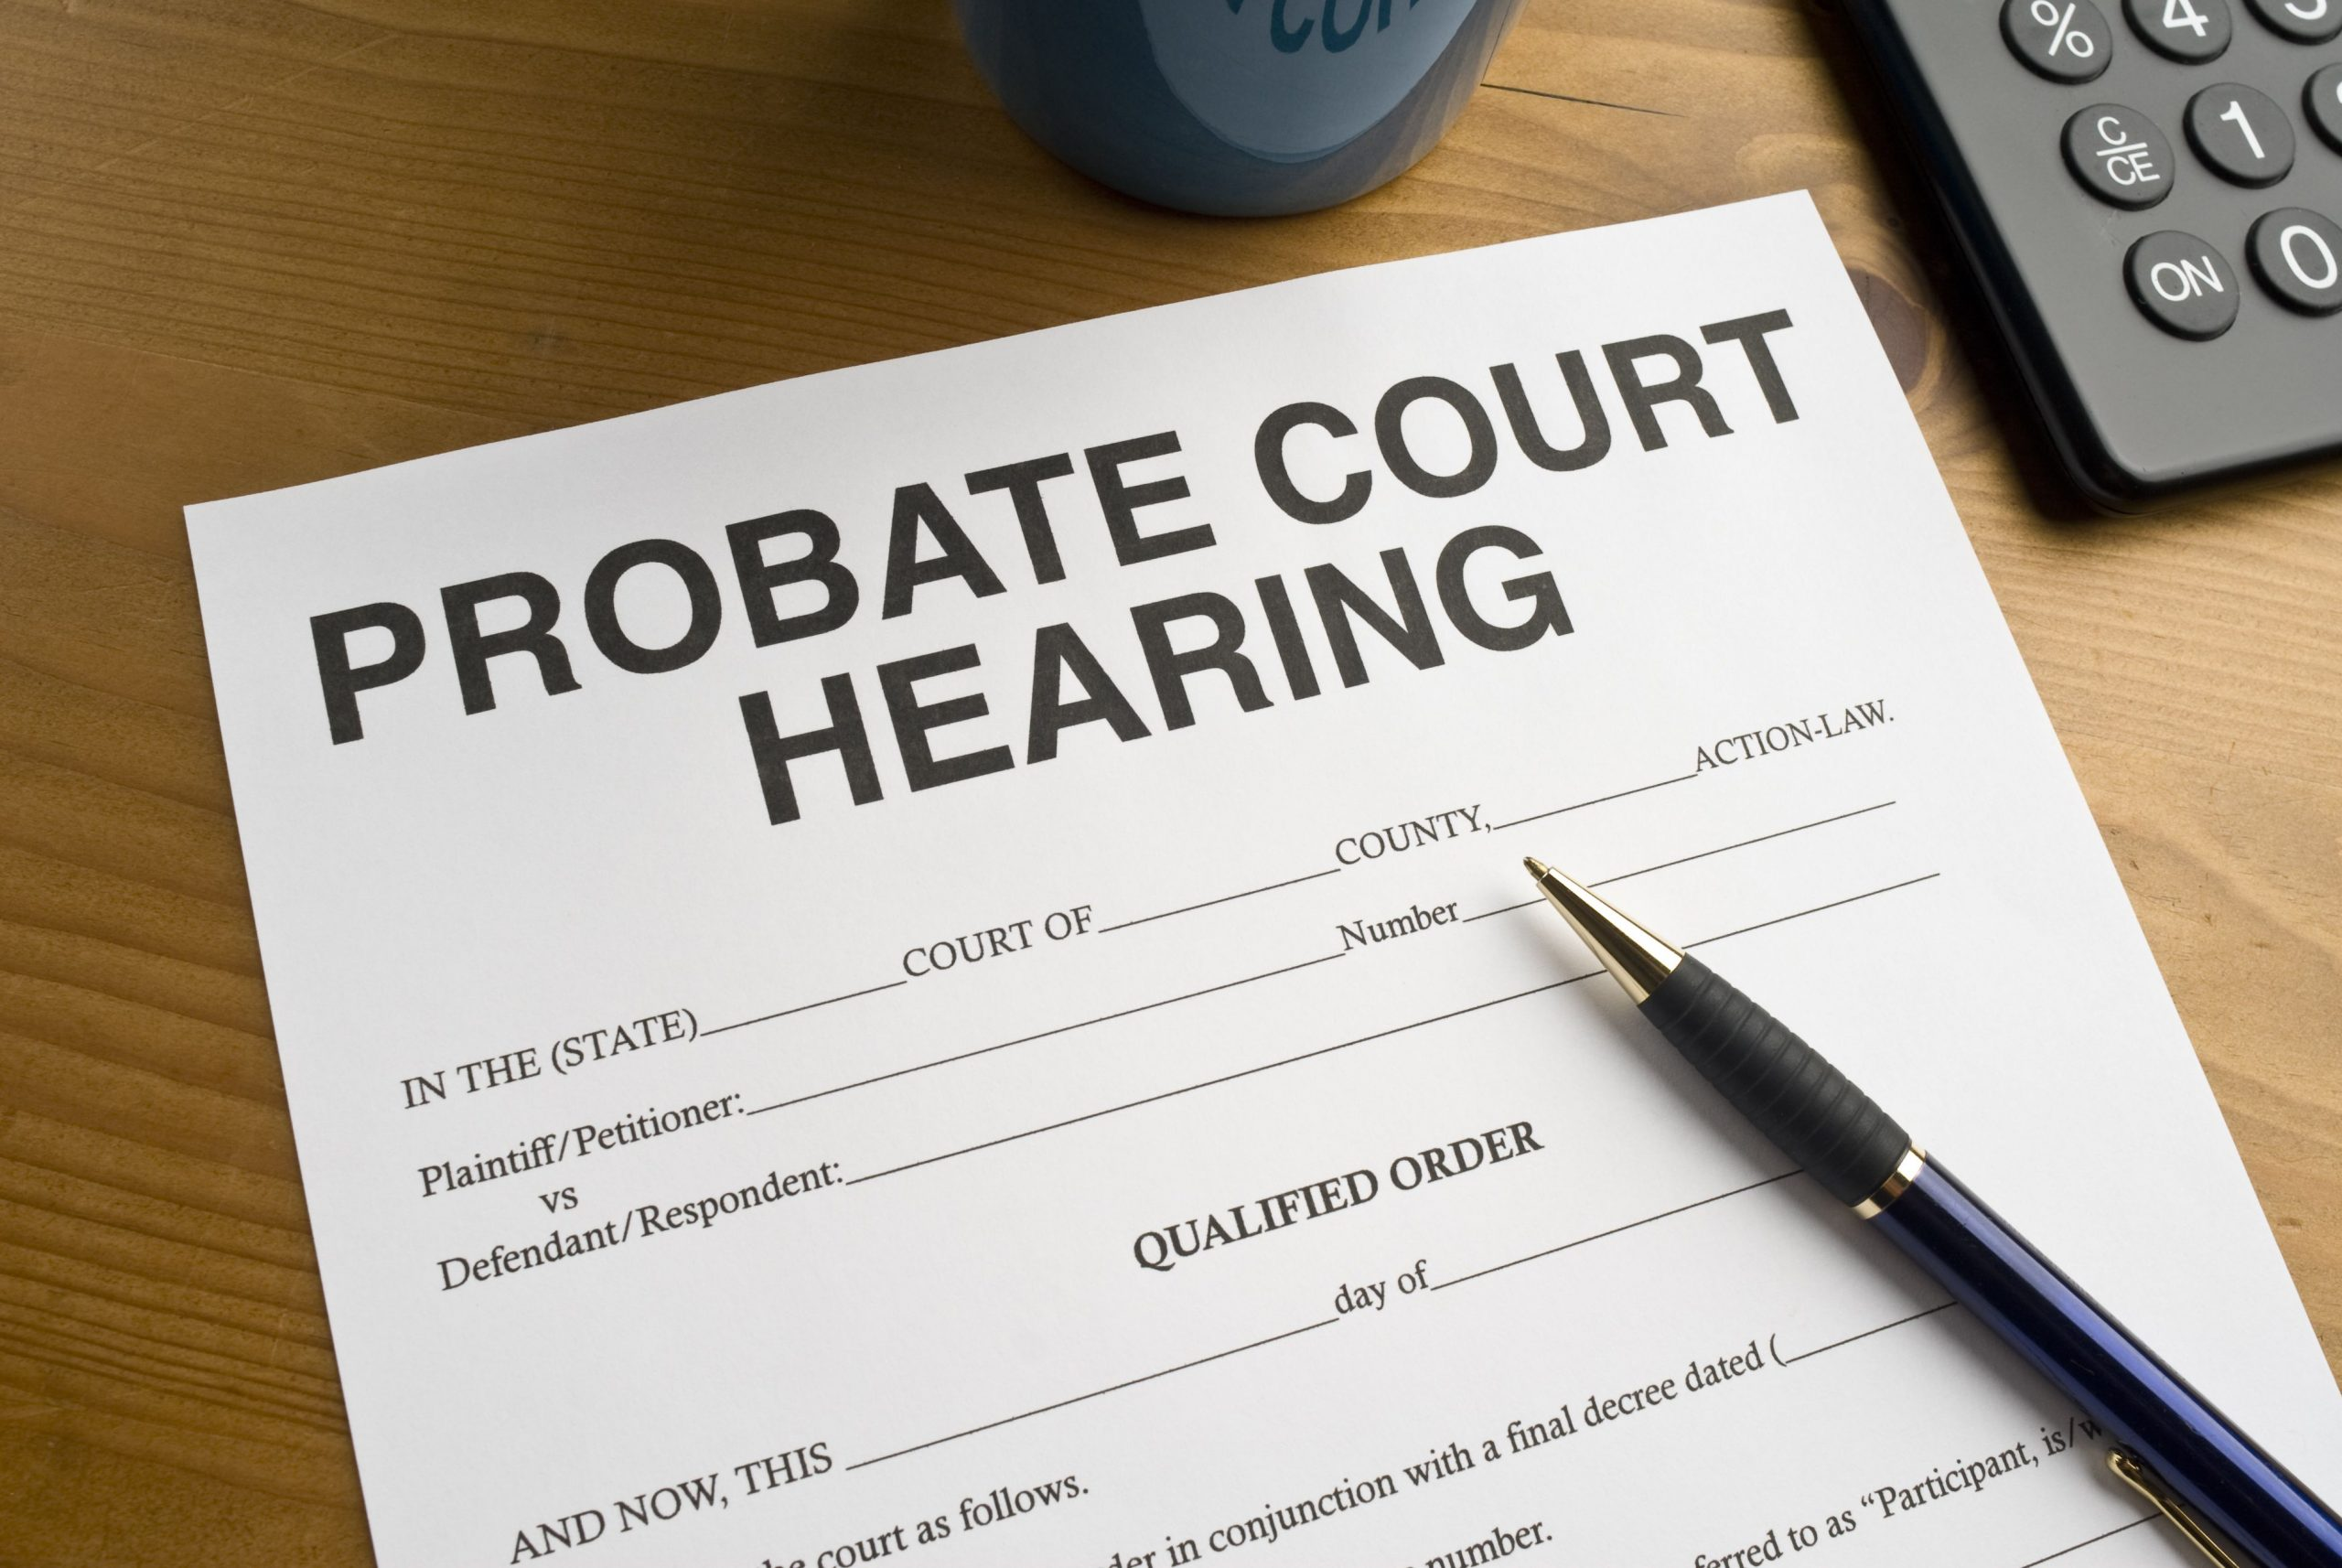 What Happens If You Don't Do Probate